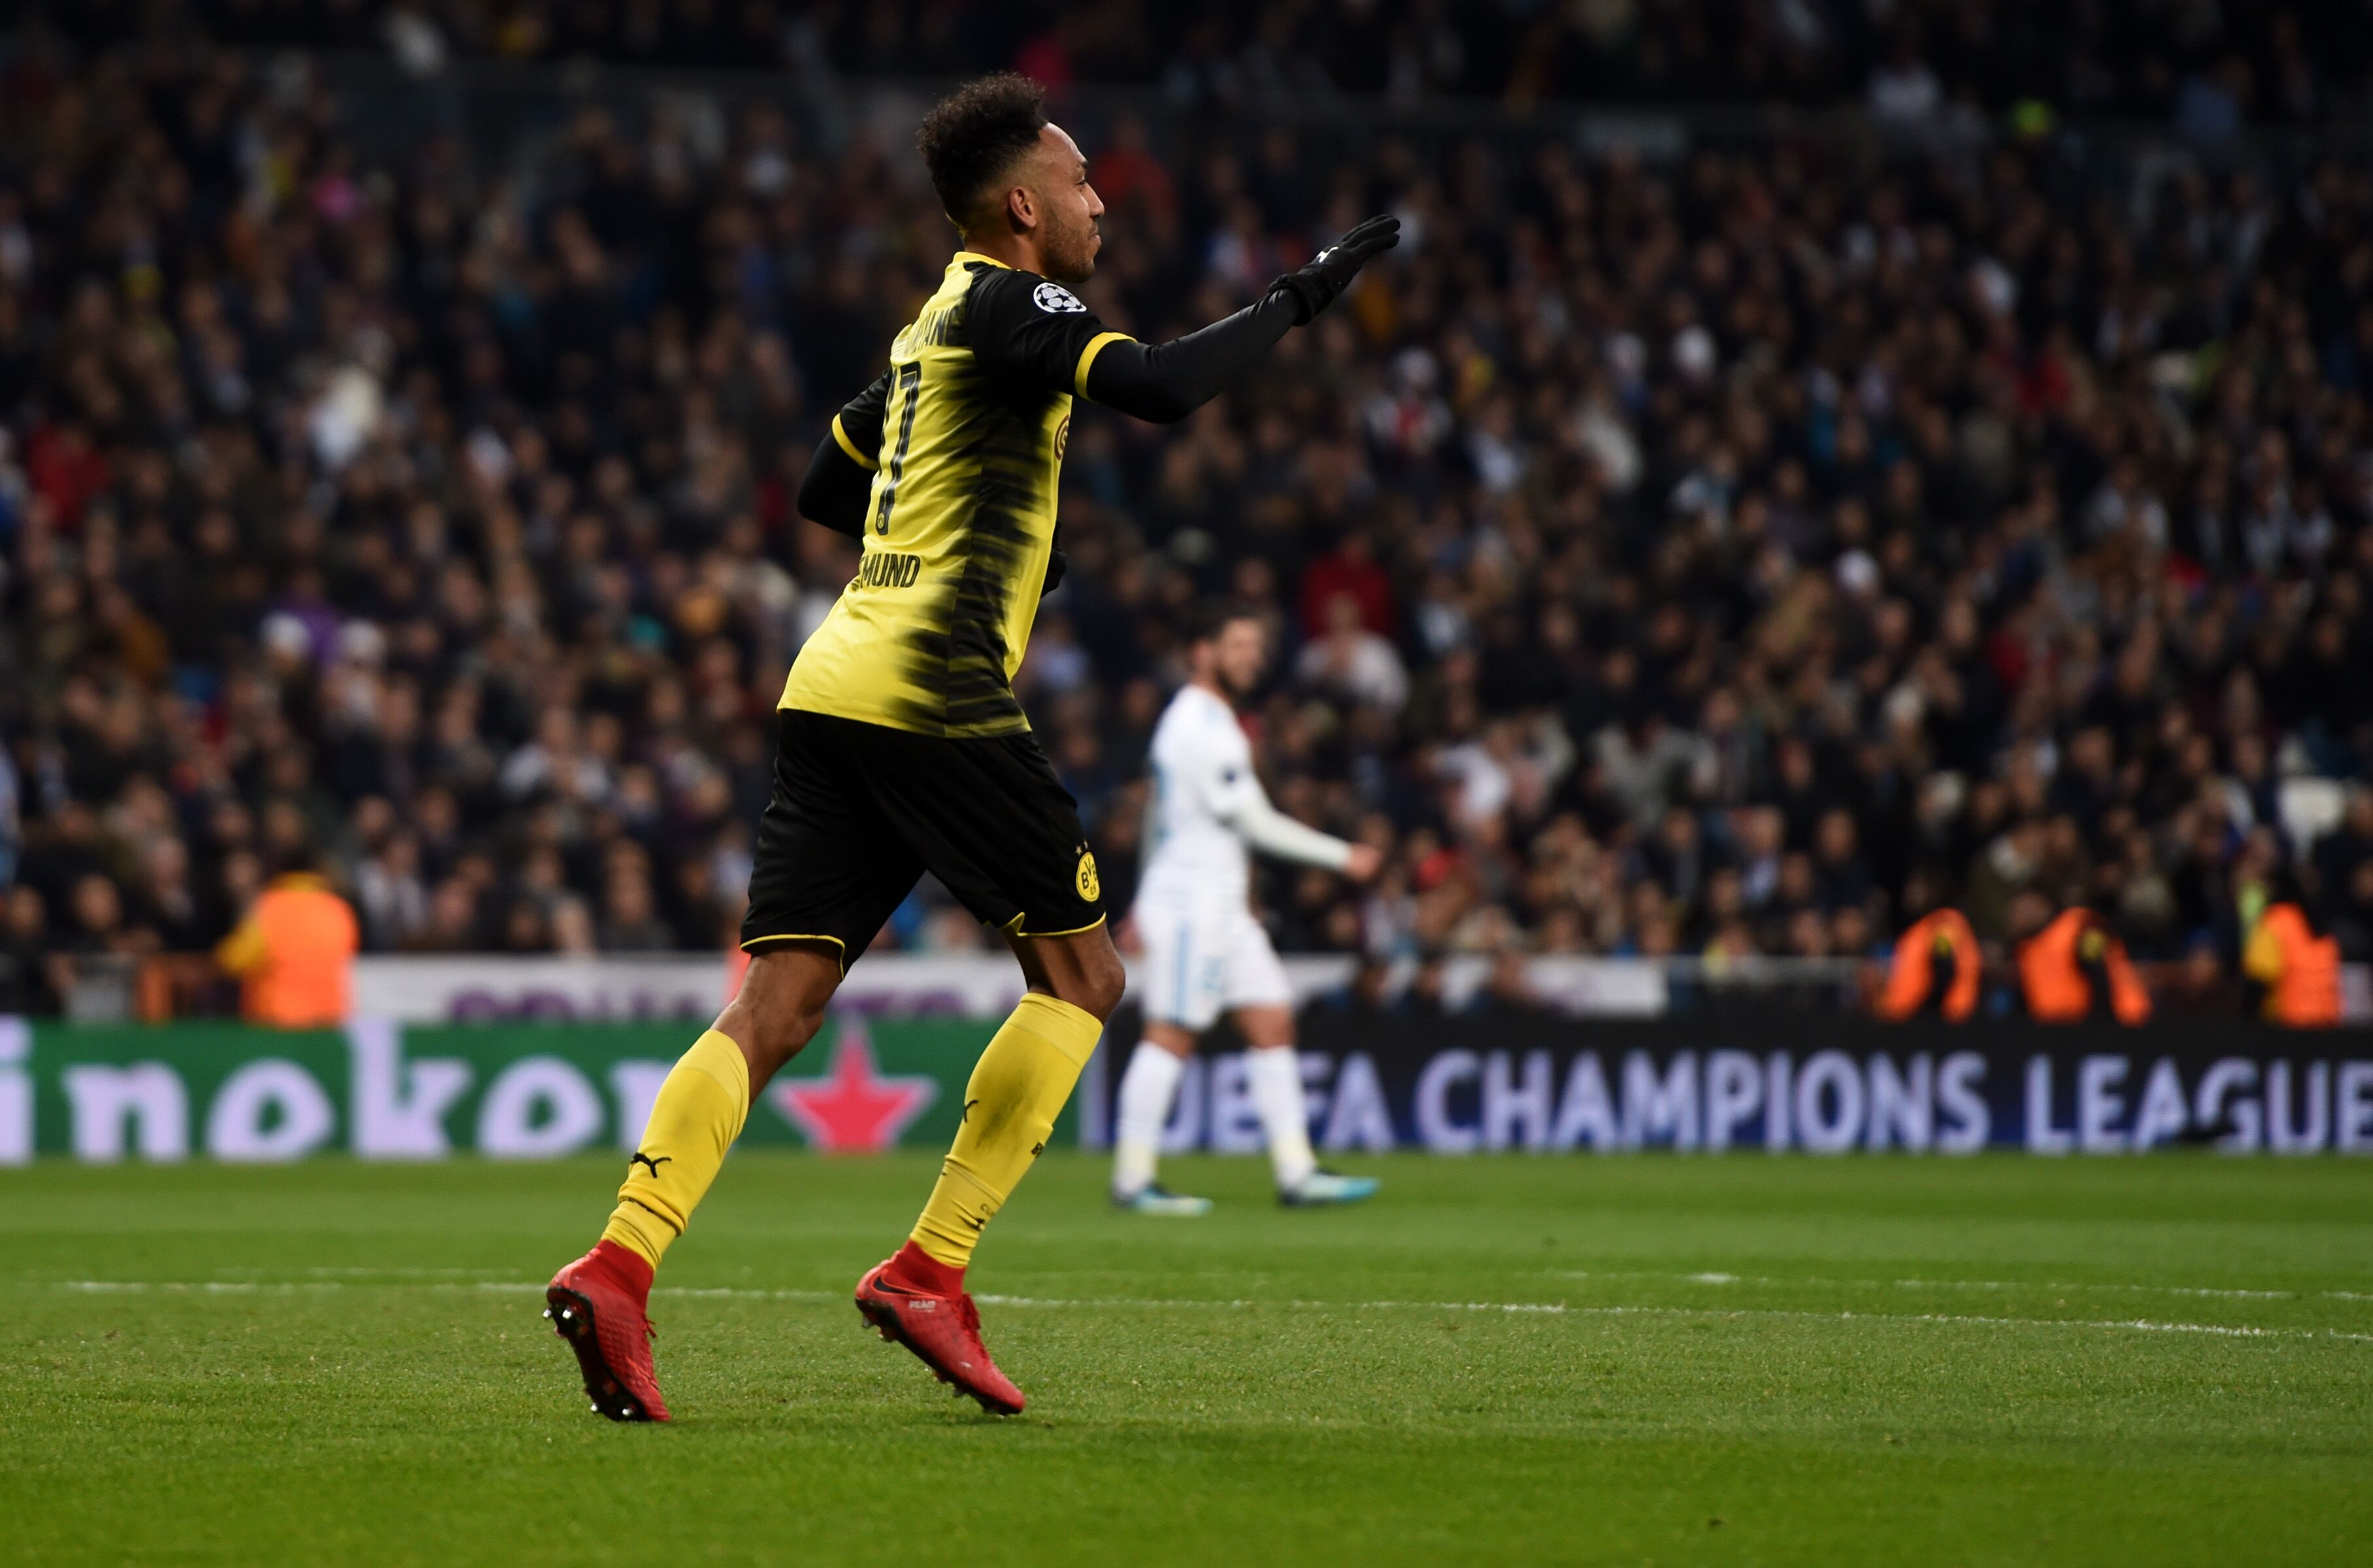 Arsenal: Pierre-Emerick Aubameyang did something Alexis could not